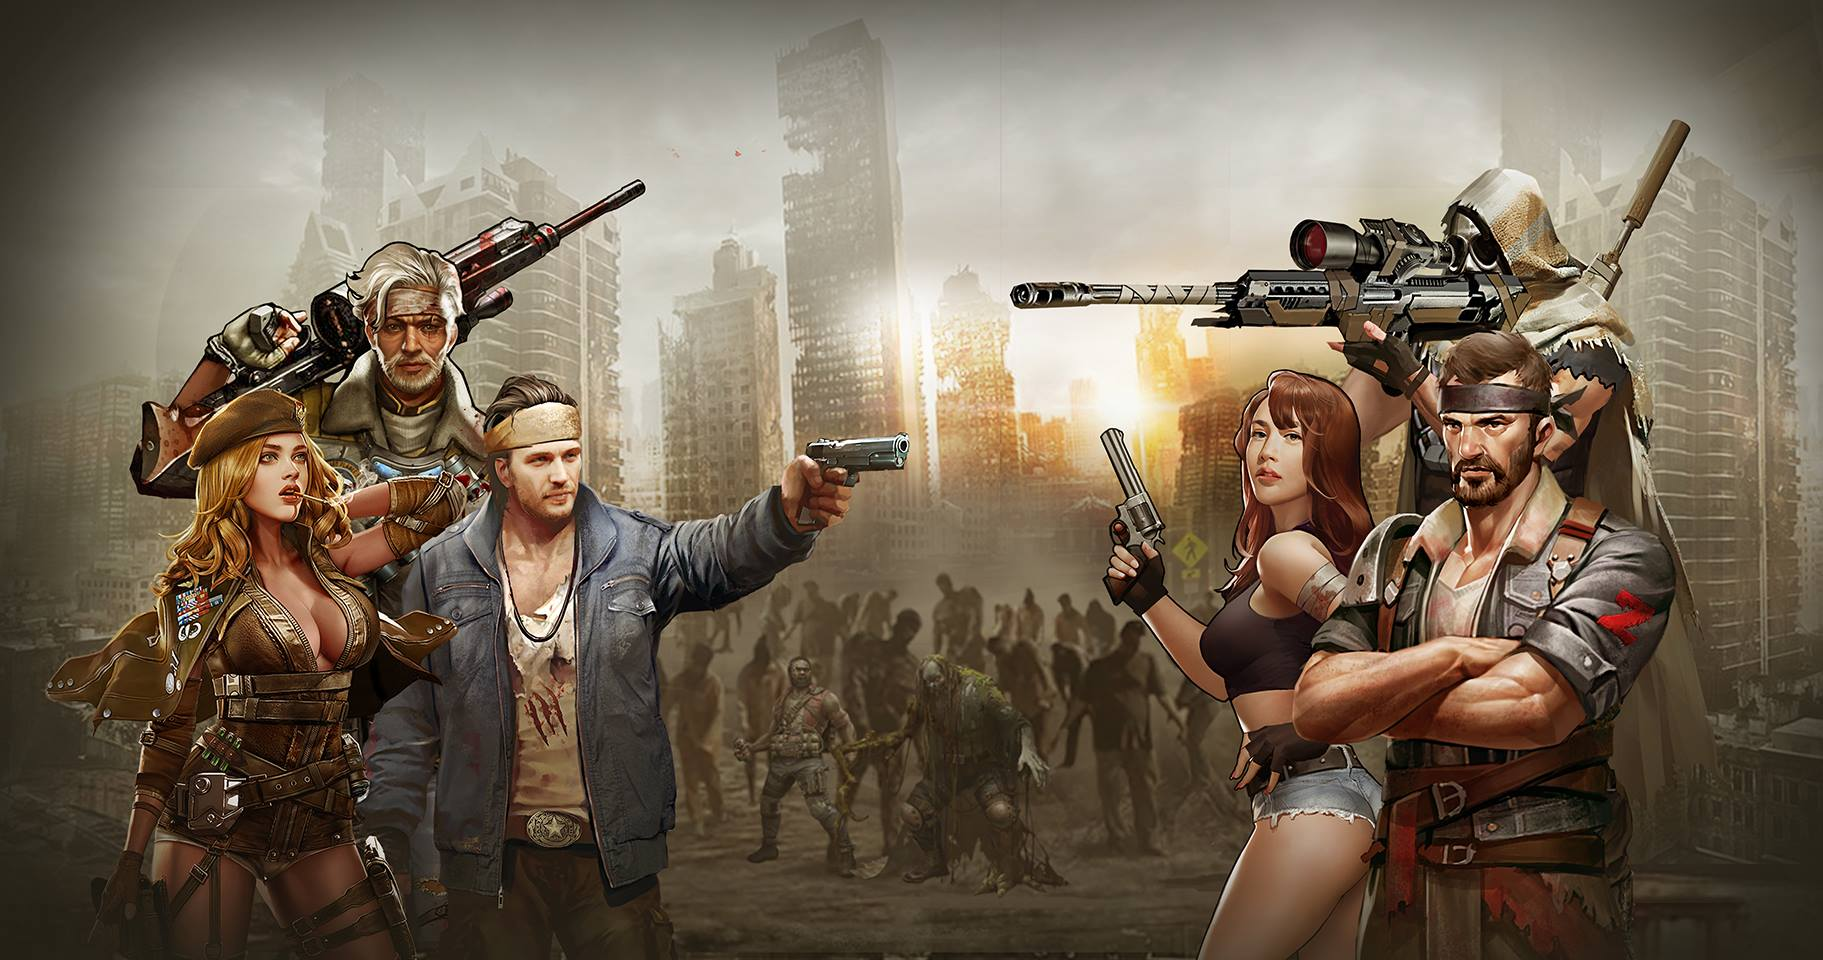 Last Empire War Z free download without human verification